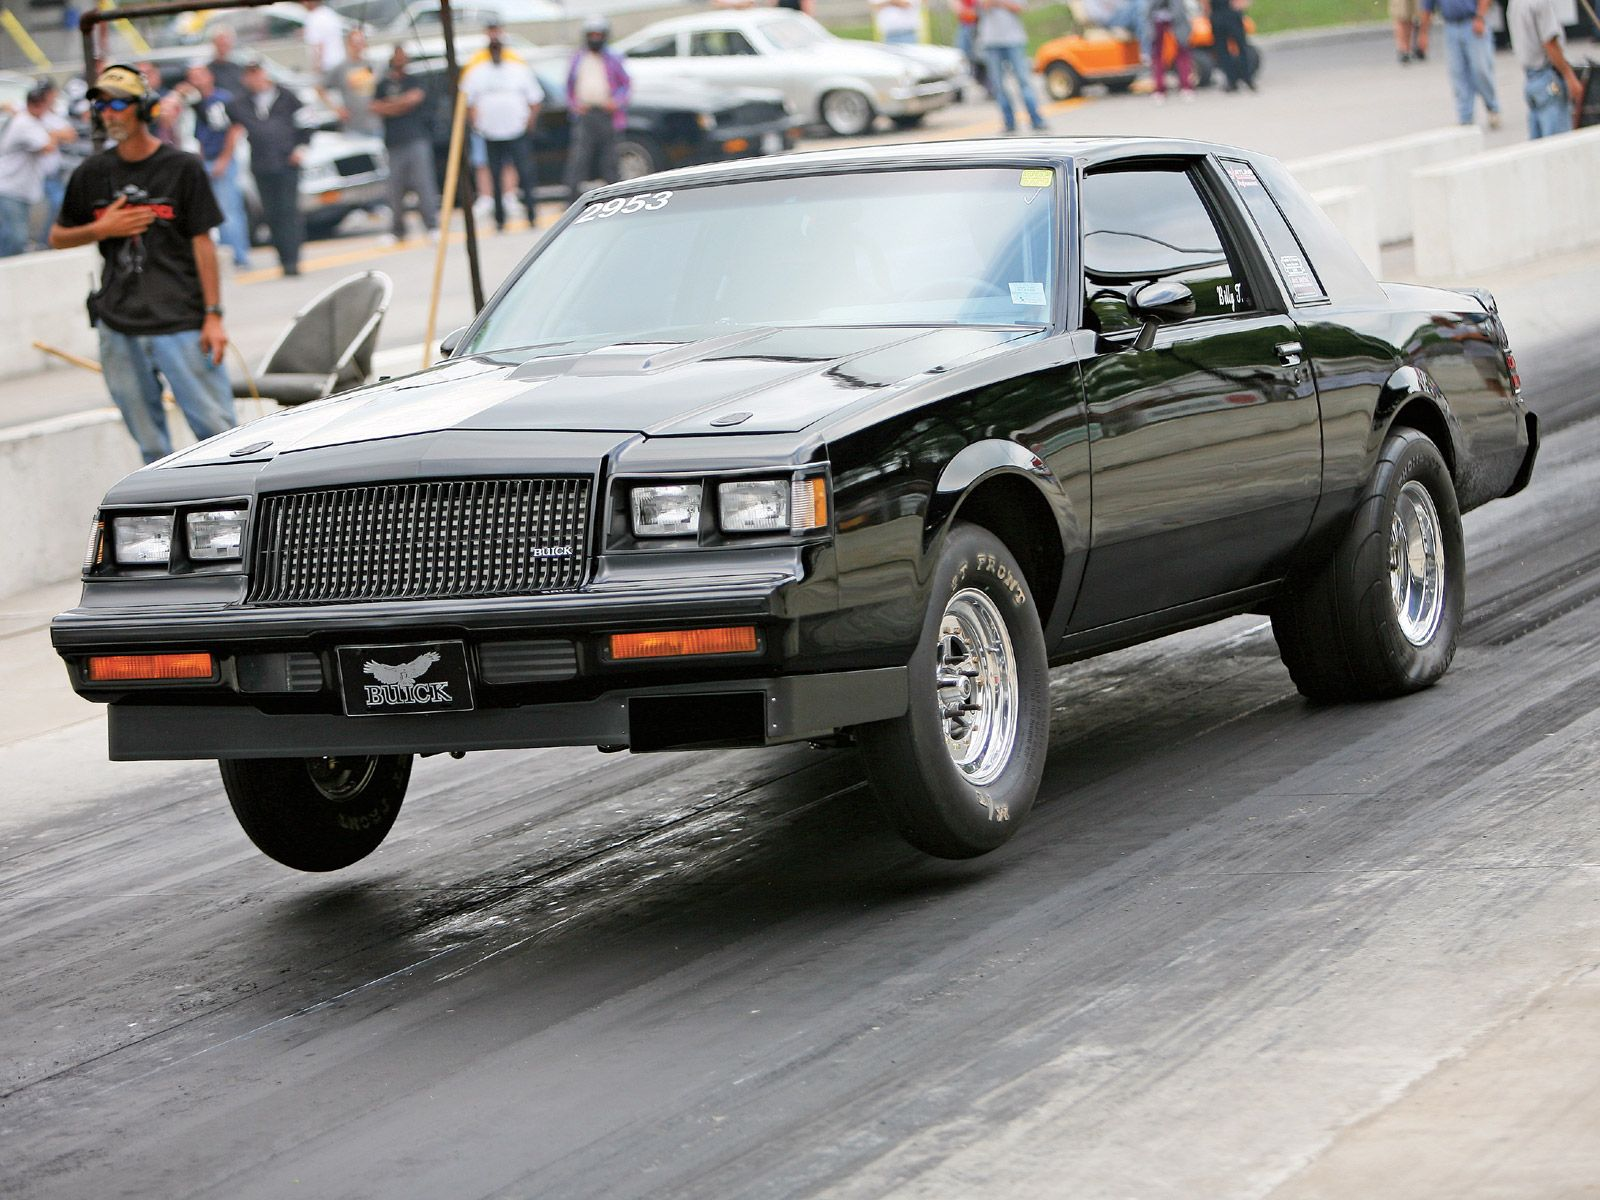 Drag Racing Pictures Google Search Buick Grand National 1987 Buick Grand National Buick